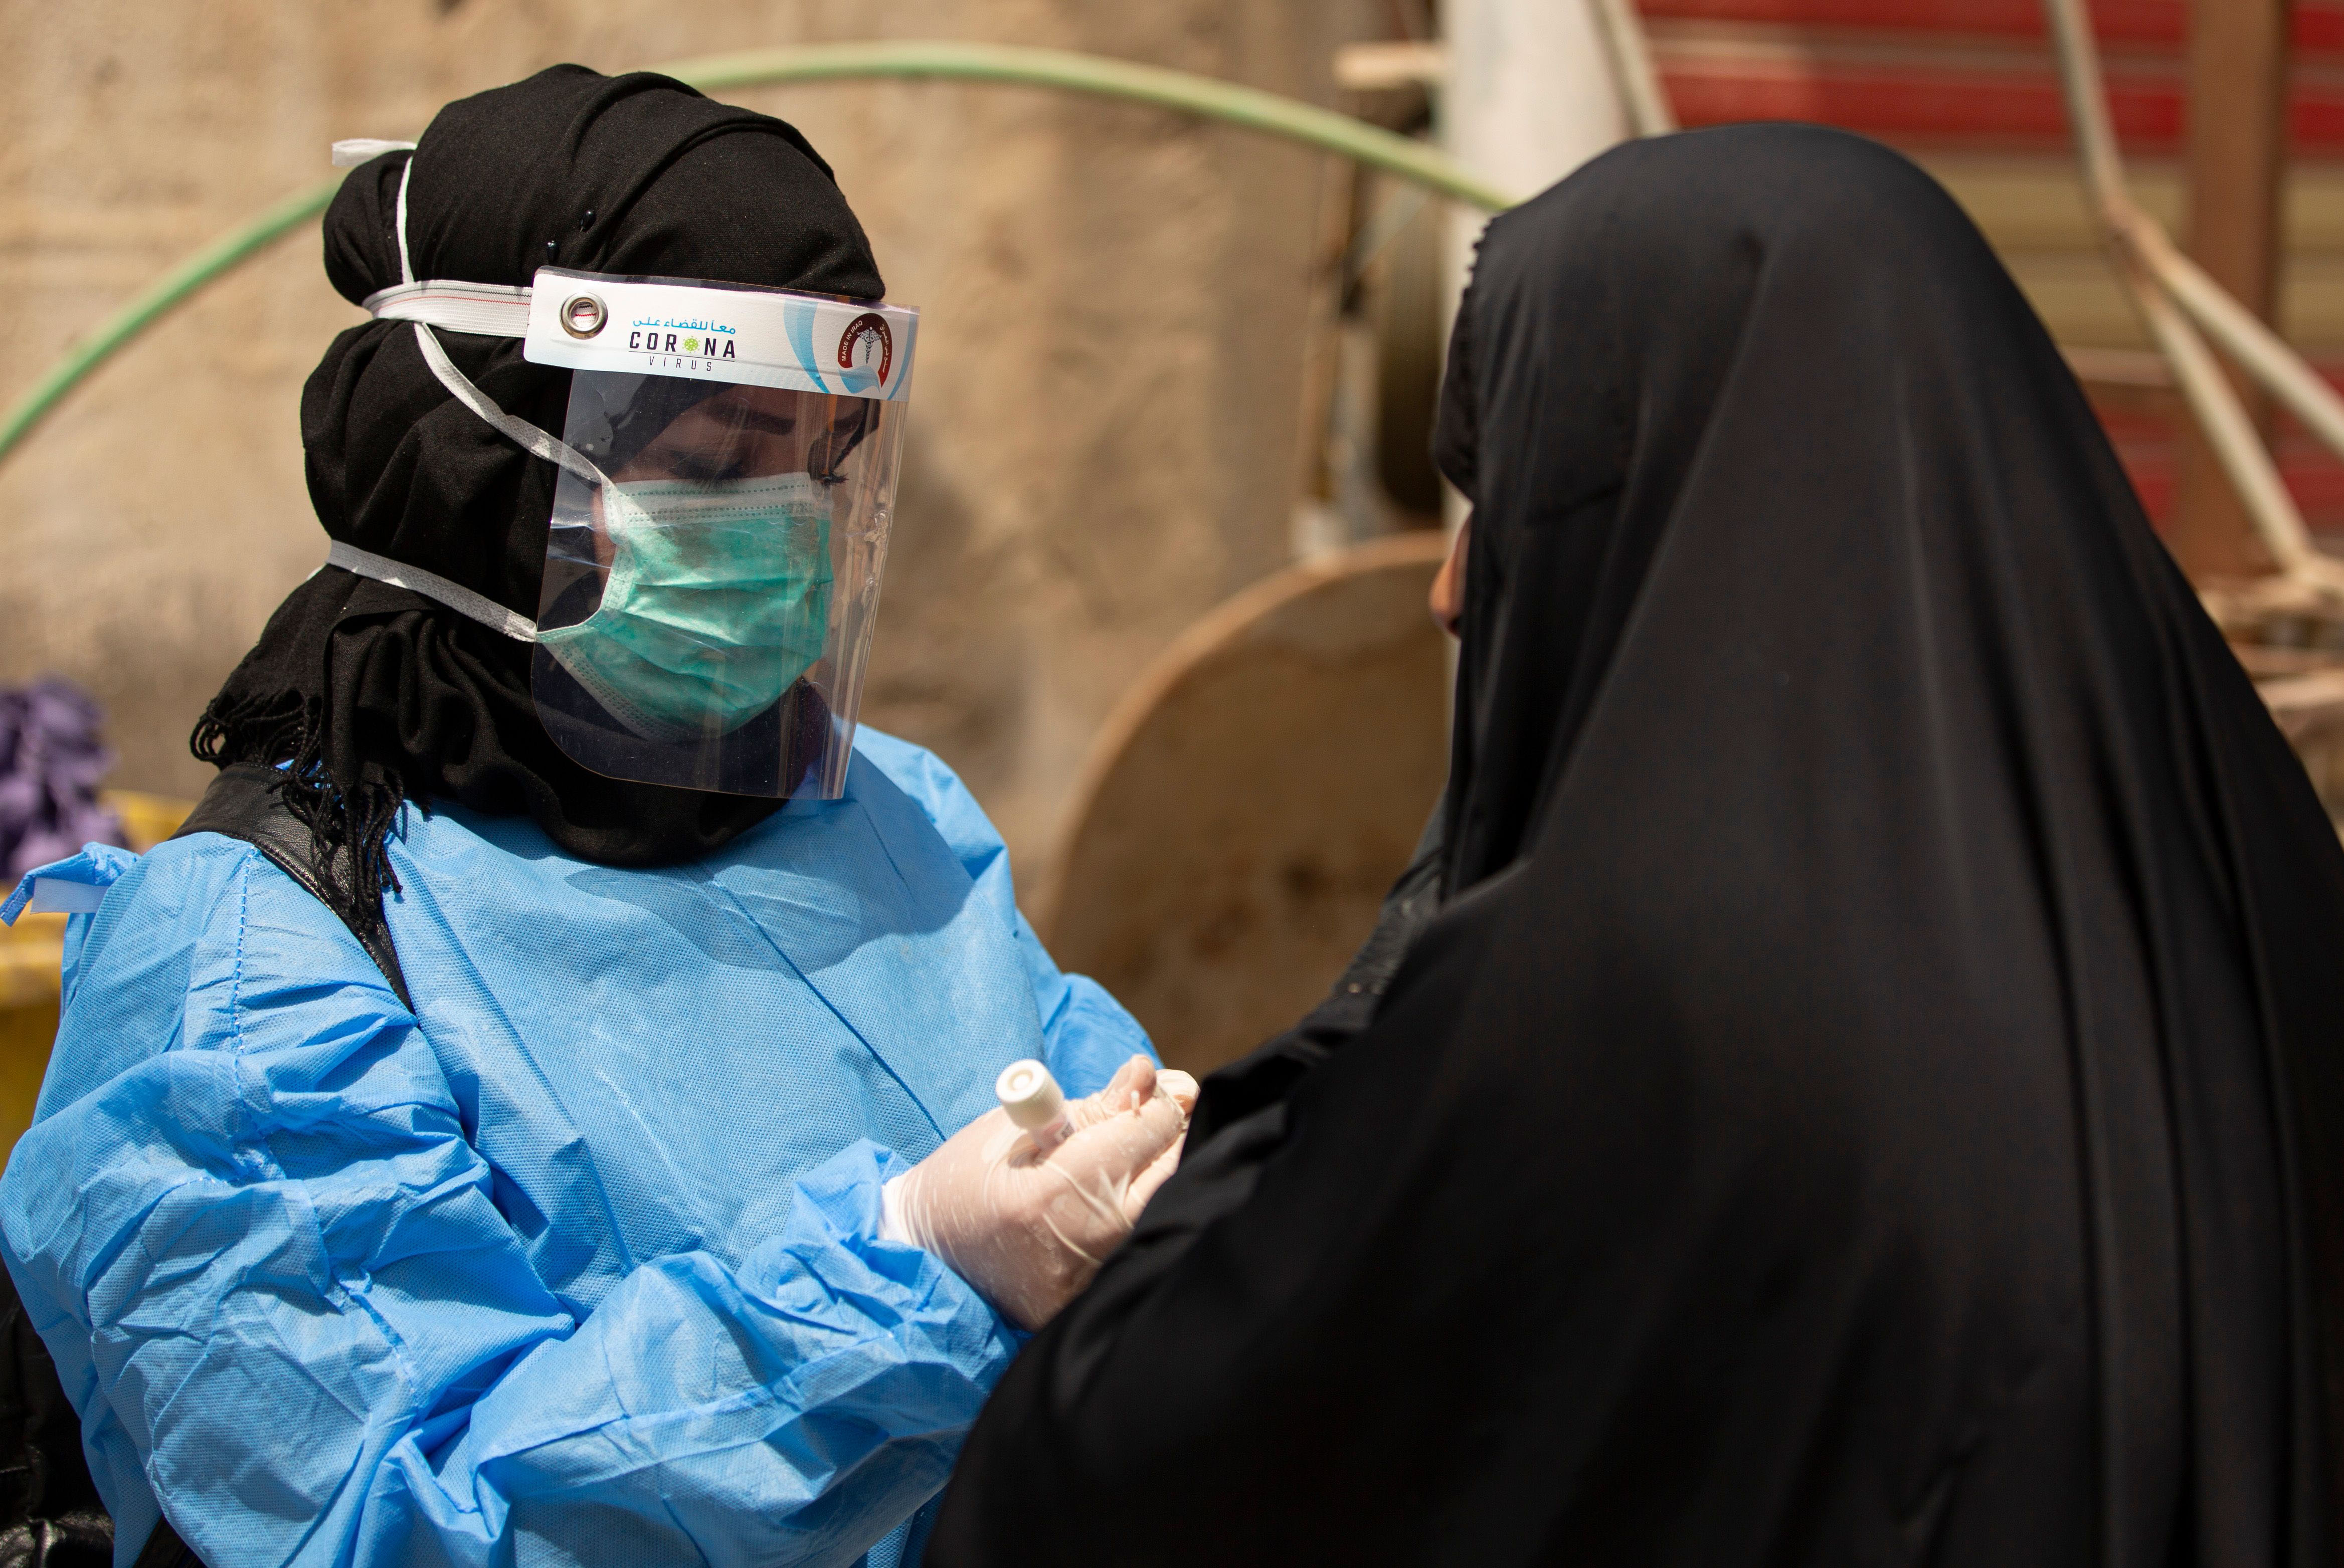 A medical worker prepares to take a swab from a person being tested for Covid-19 in Basra, Iraq, on June 2.